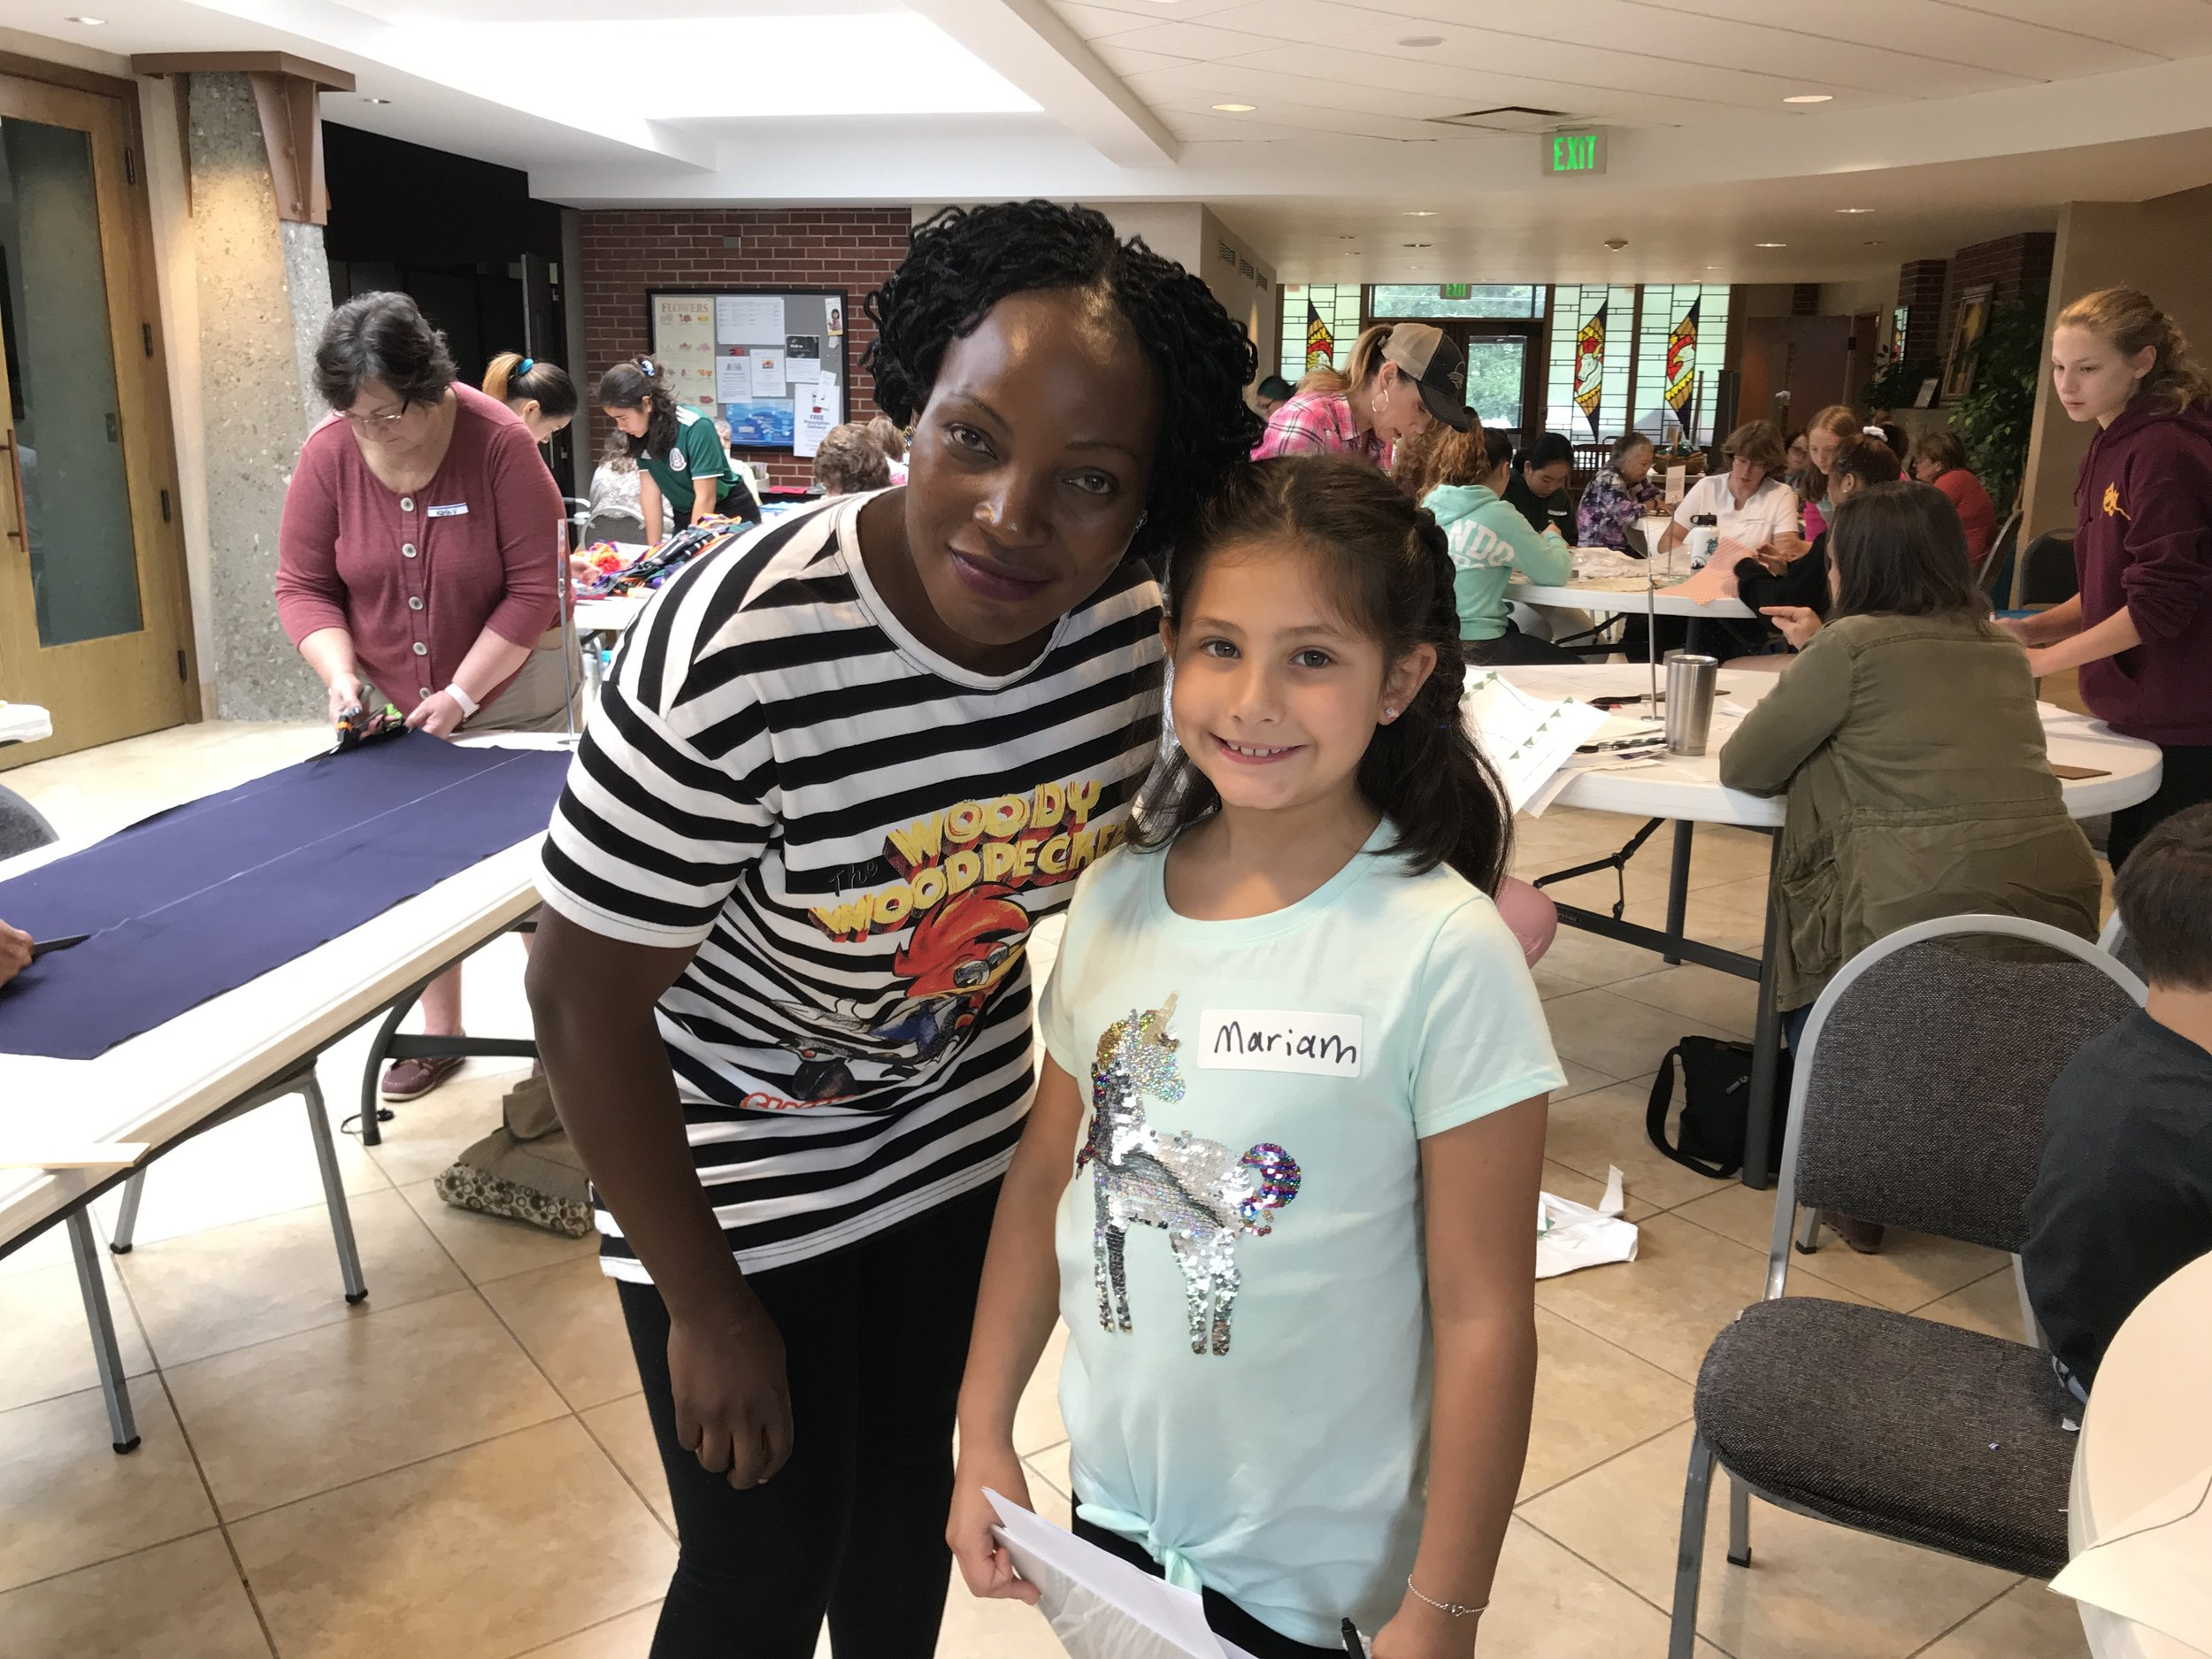 Phoebe and a young volunteer at the Calvary Methodist Church MoonBee a few weeks ago.